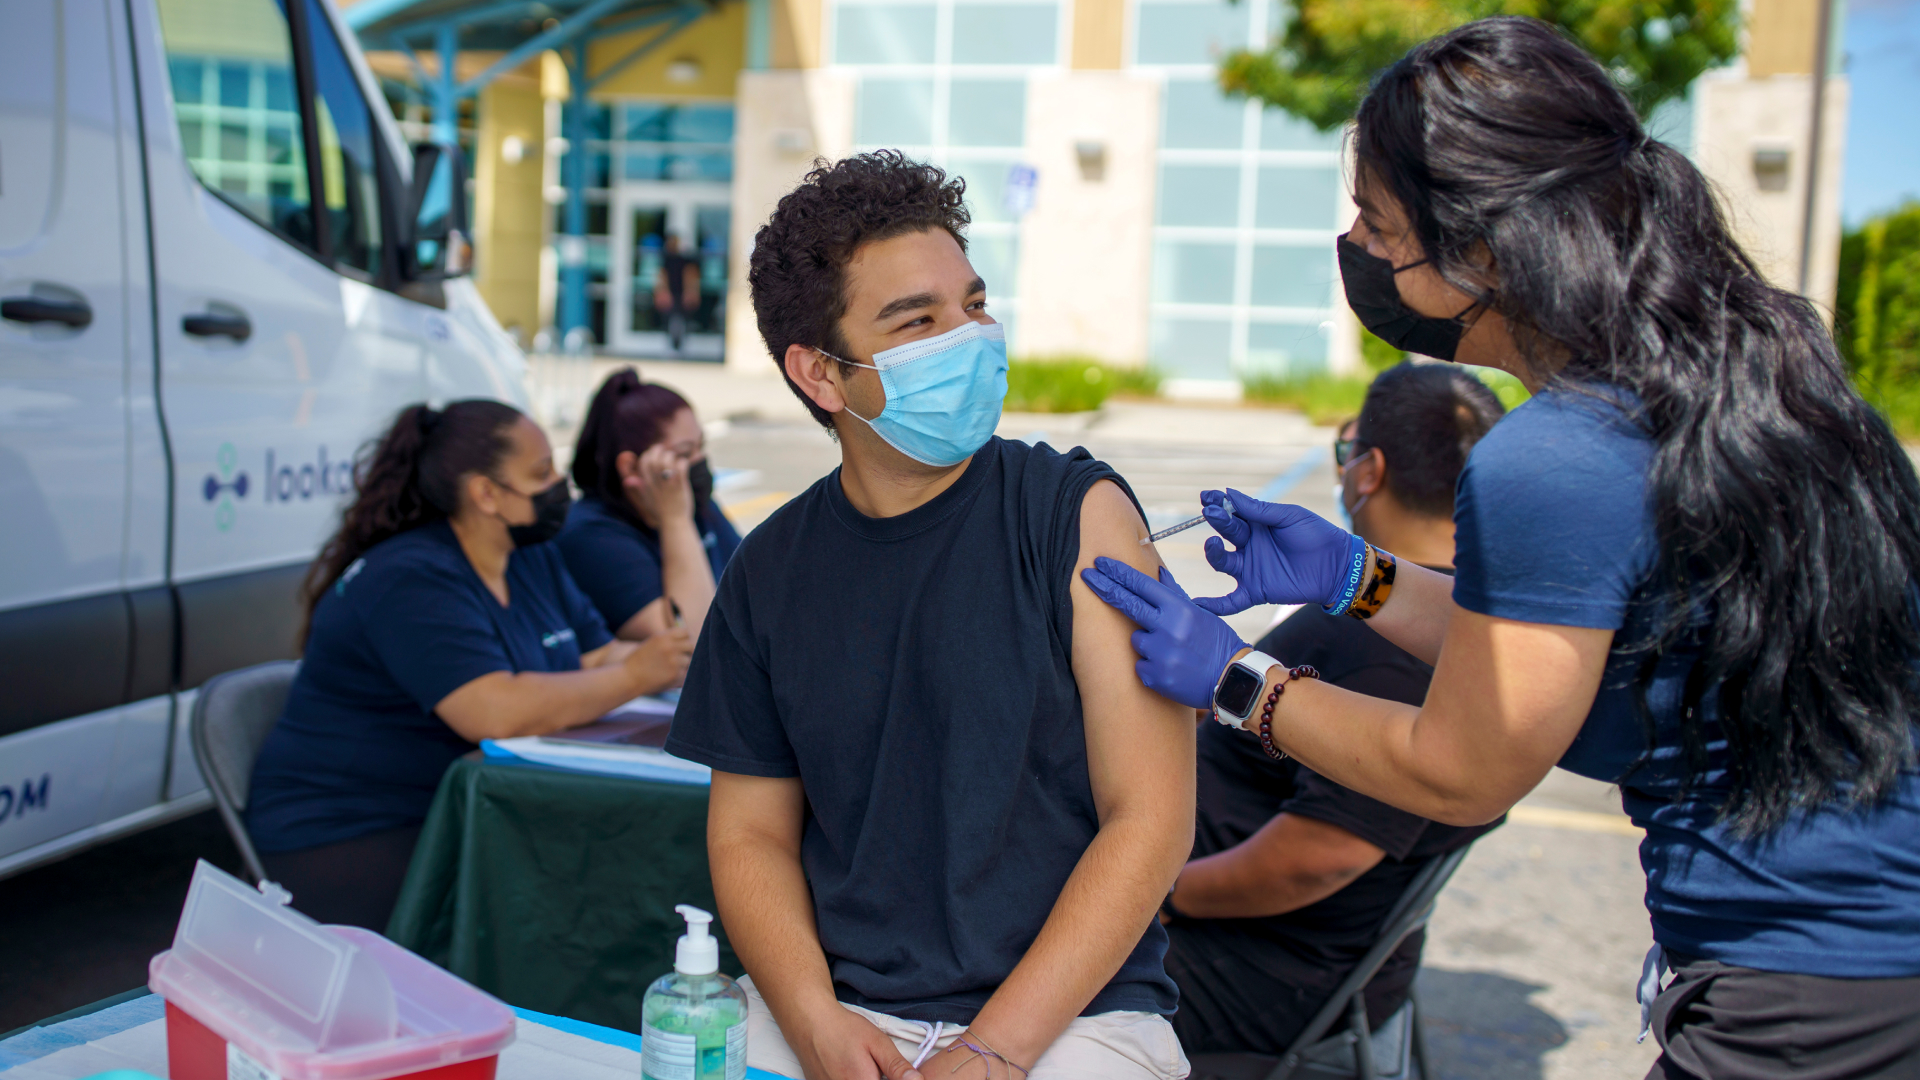 Image of person receiving COVID-19 vaccine